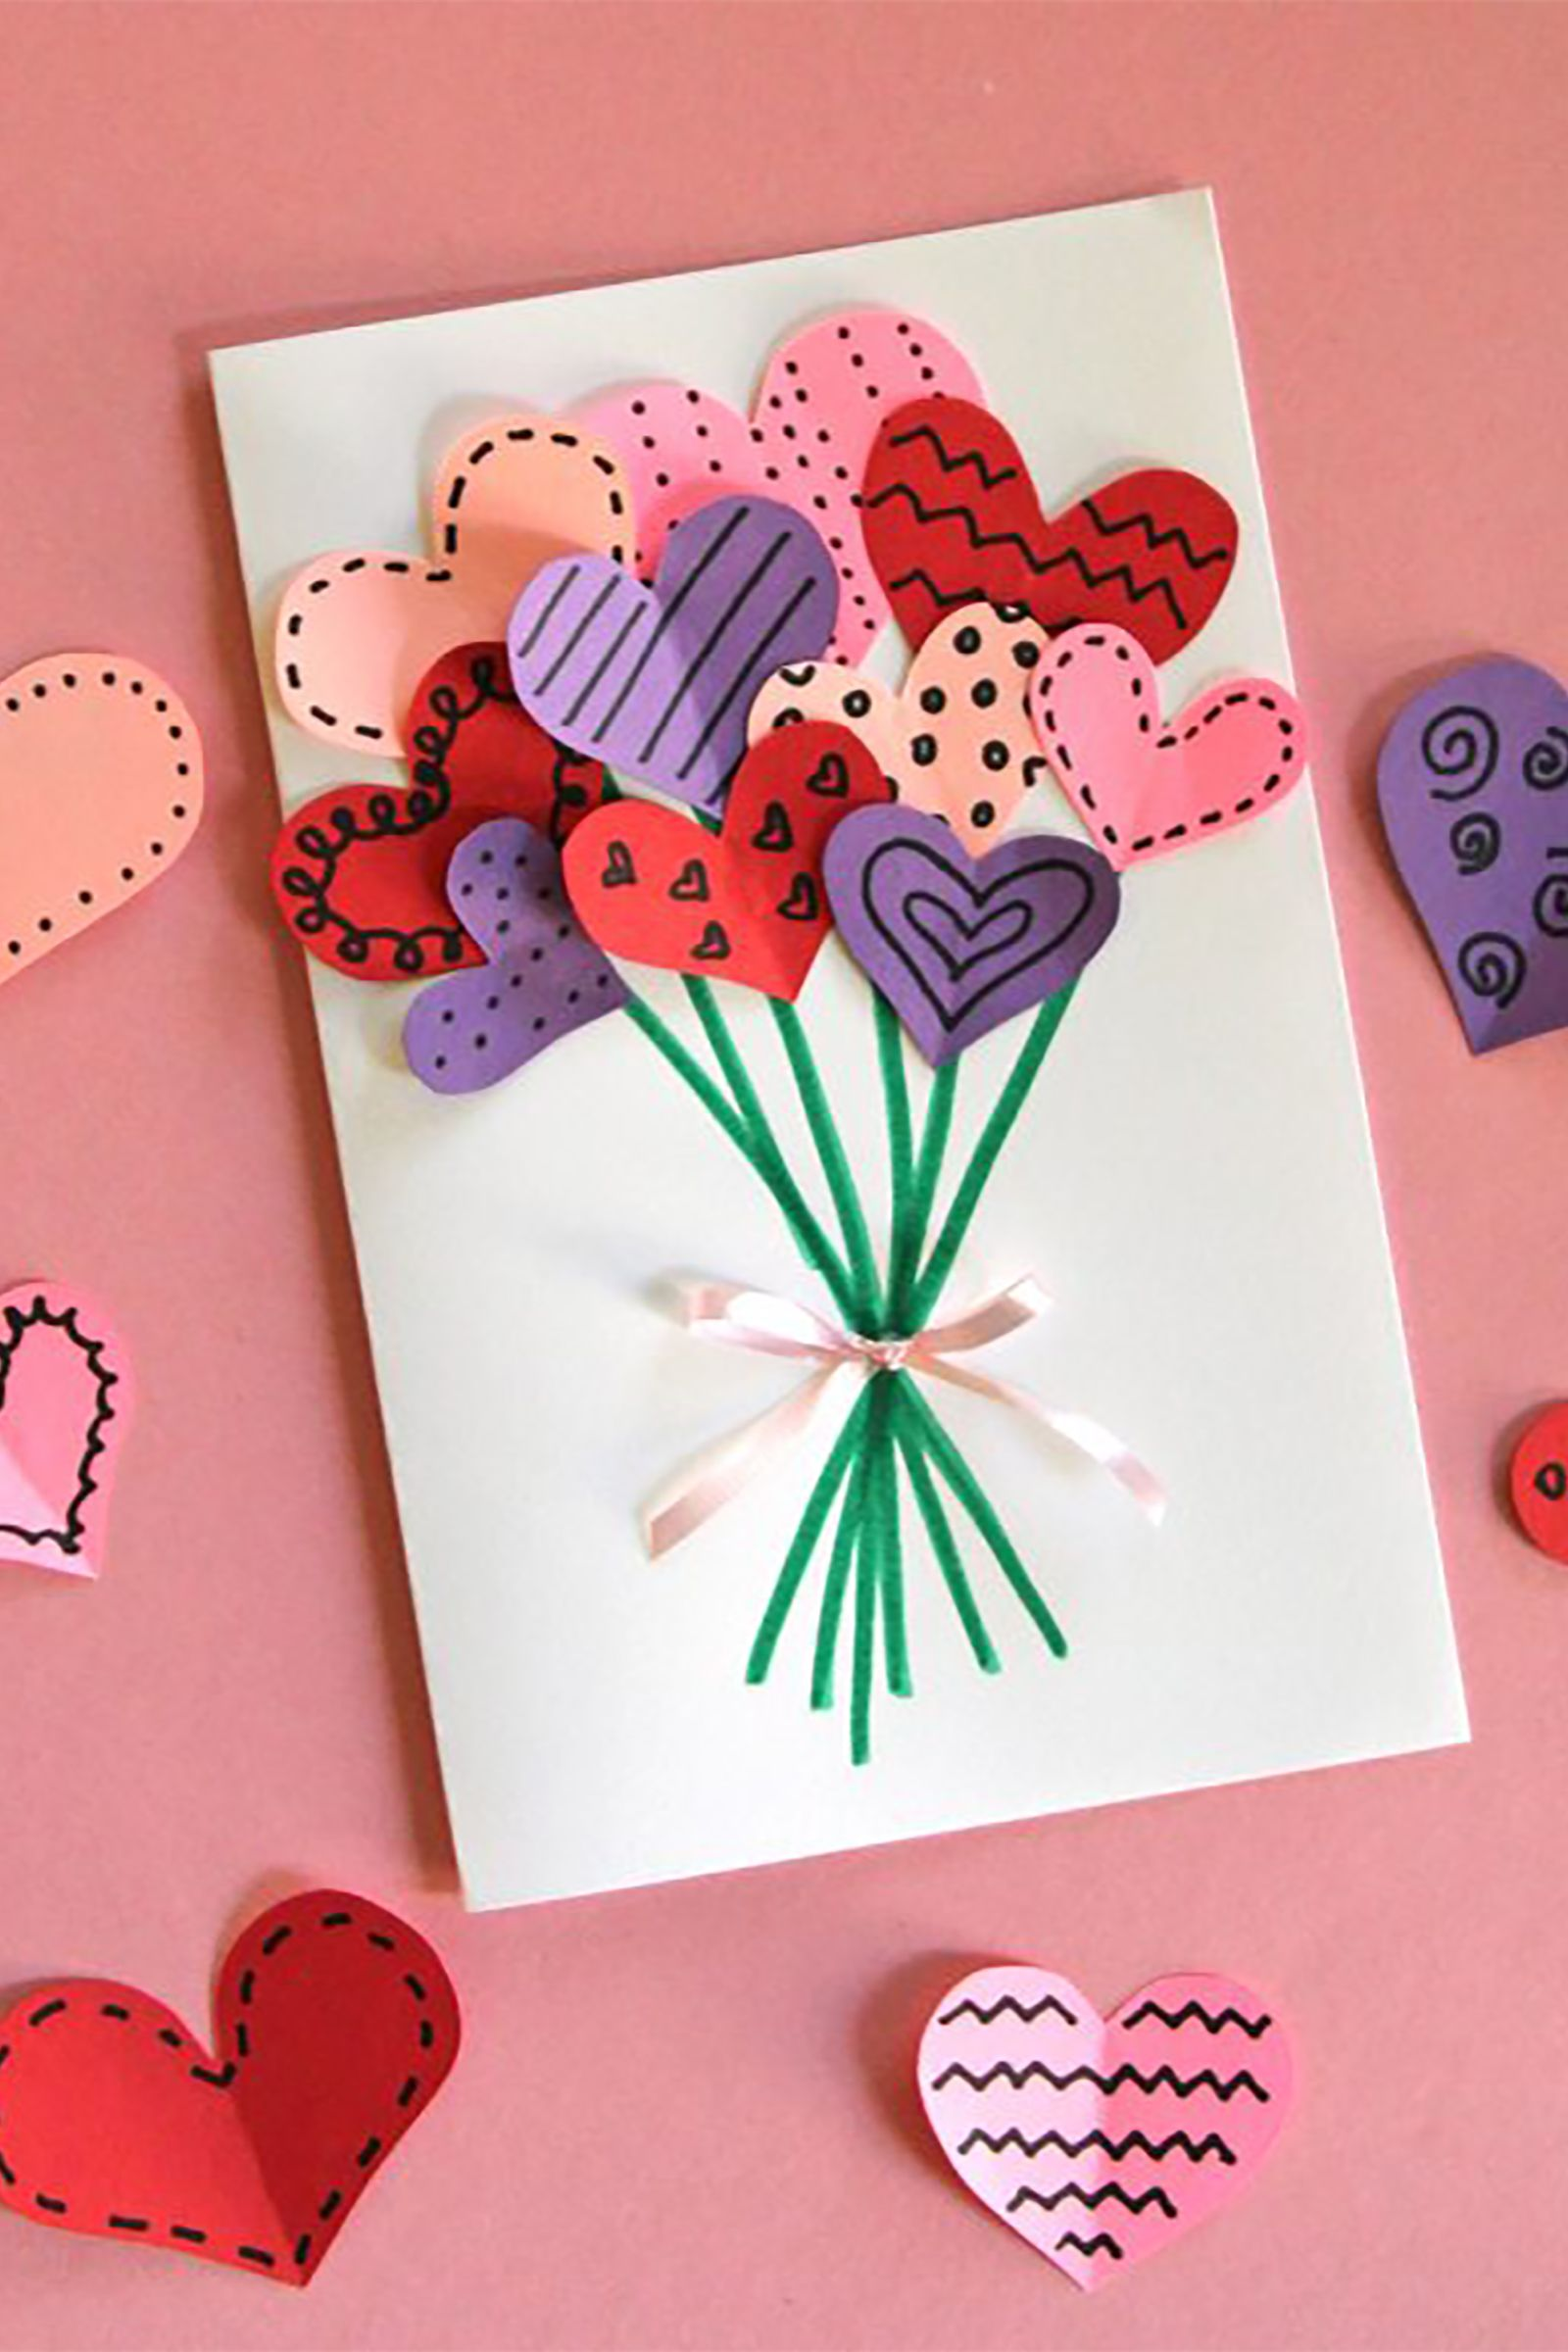 40 Easy Diy Valentine S Day Cards Homemade Valentine S Day Card Ideas